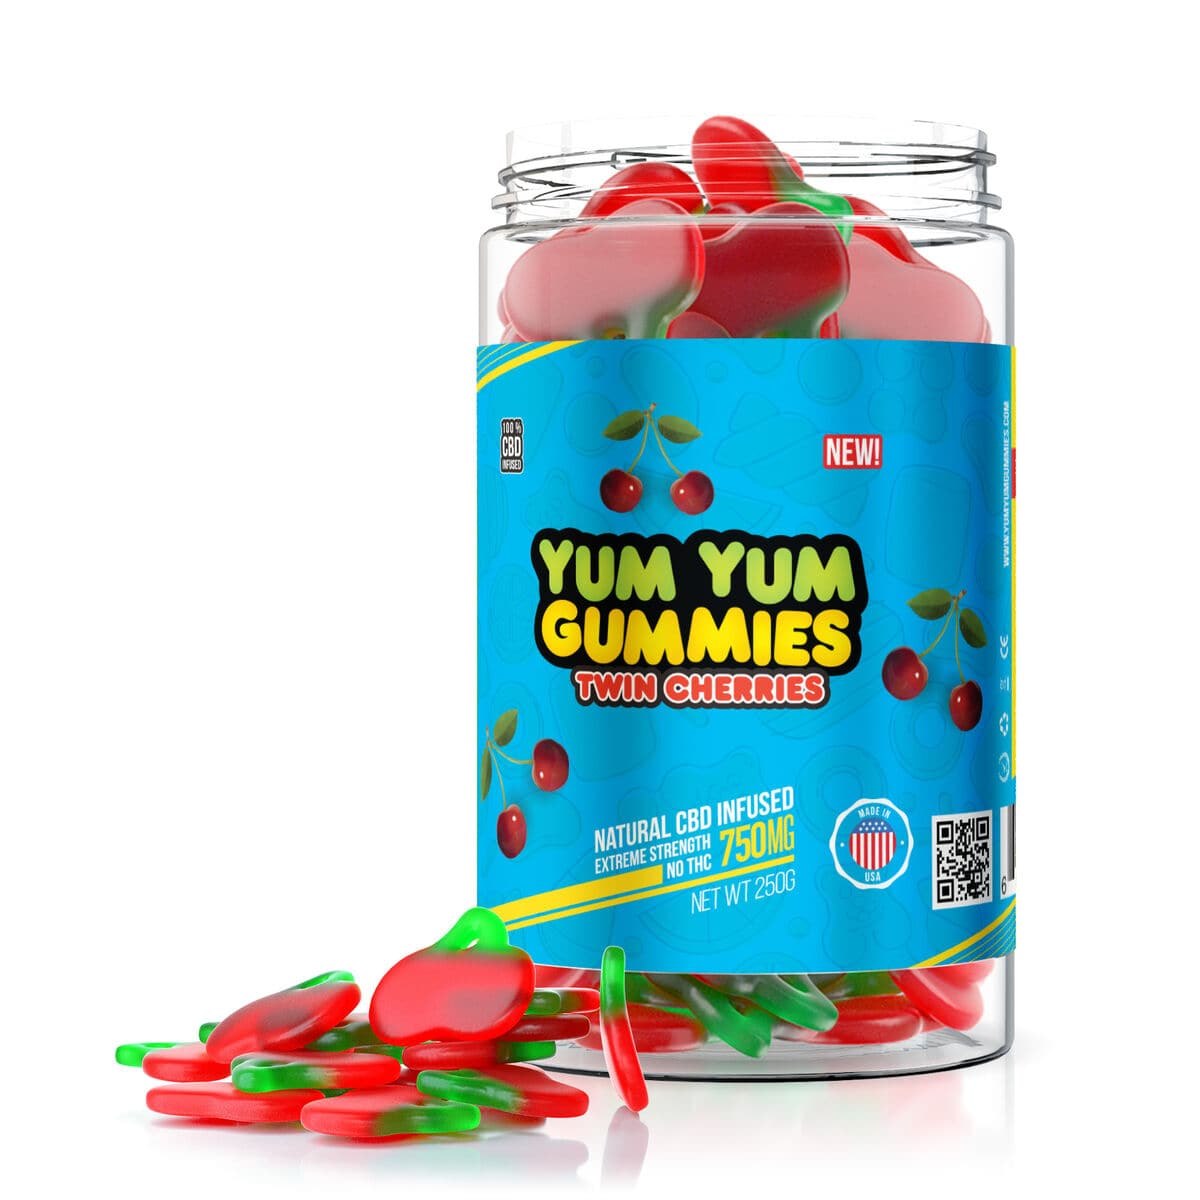 yum-yum-gummies-750mg-cbd-infused-twin-cherries_0-2